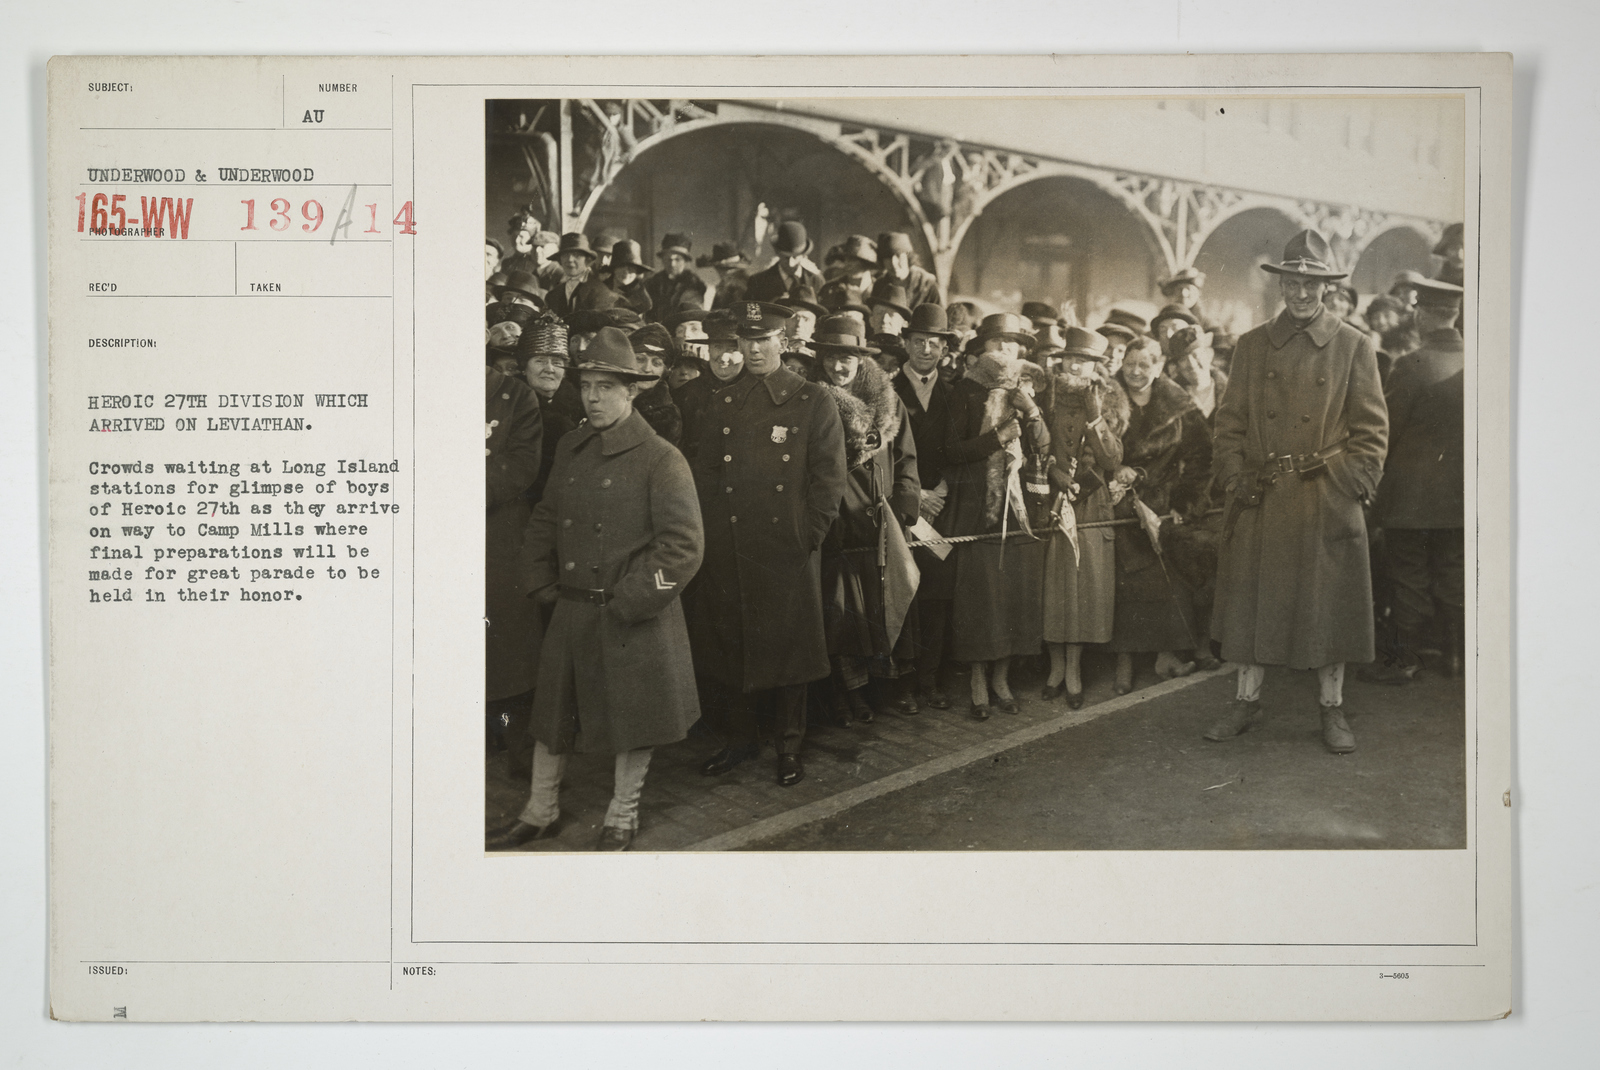 Demobilization - Arrivals Home - Heroic 27th division which arrived on Leviathan. Crowds waiting at Long Island stations for glimpse of boys of Heroic 27th as they arrive on way to Camp Mills where final preparations will be made for great parade to be held in their honor